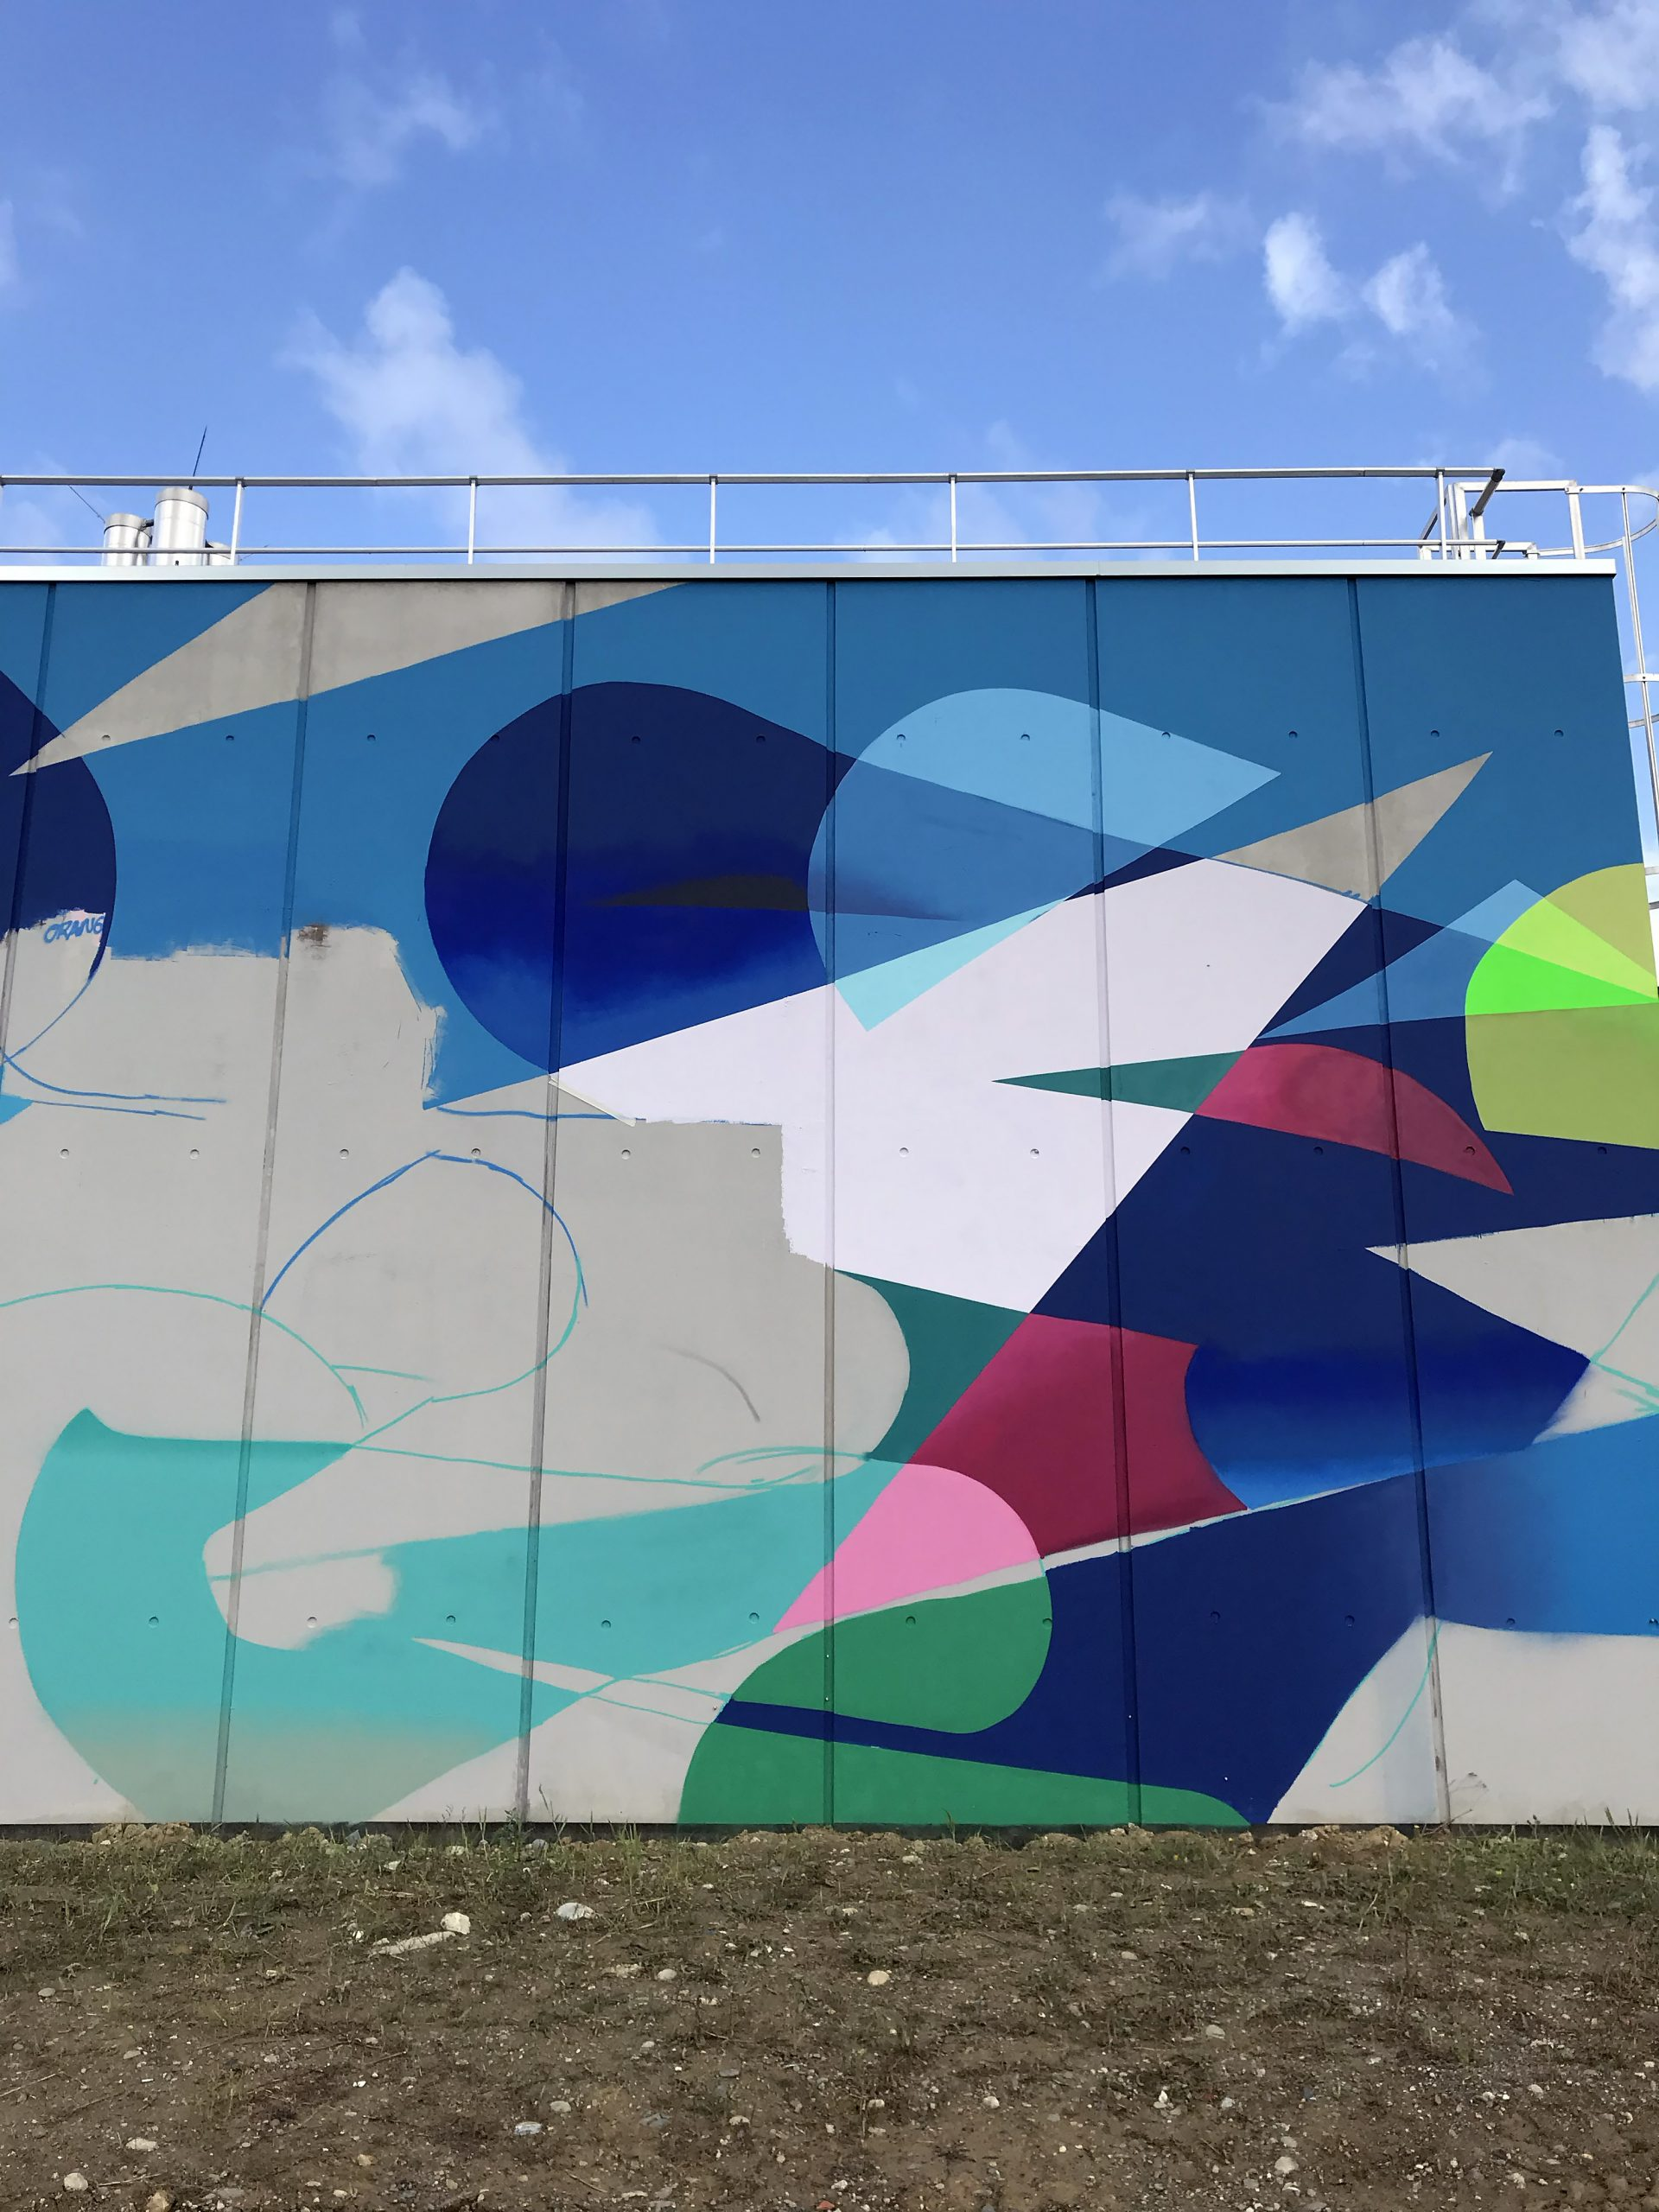 B1-fresque-graphic-design-wall-mural